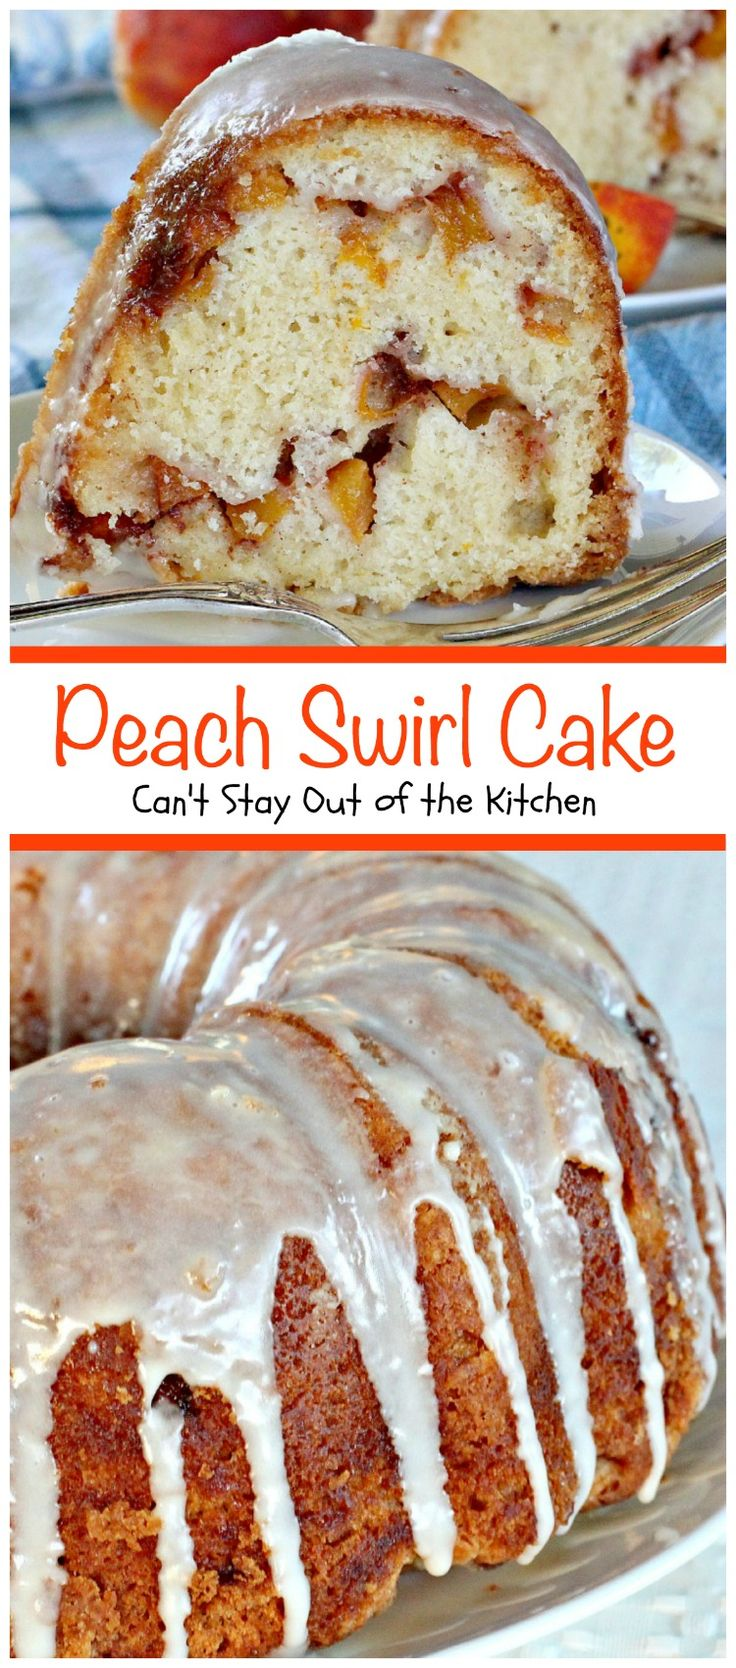 Peach Swirl Cake | Can't Stay Out of the Kitchen | this lovely #cake is fantastic. It has #peaches swirled into the batter and is glazed with vanilla icing. Perfect for company or potlucks. #dessert